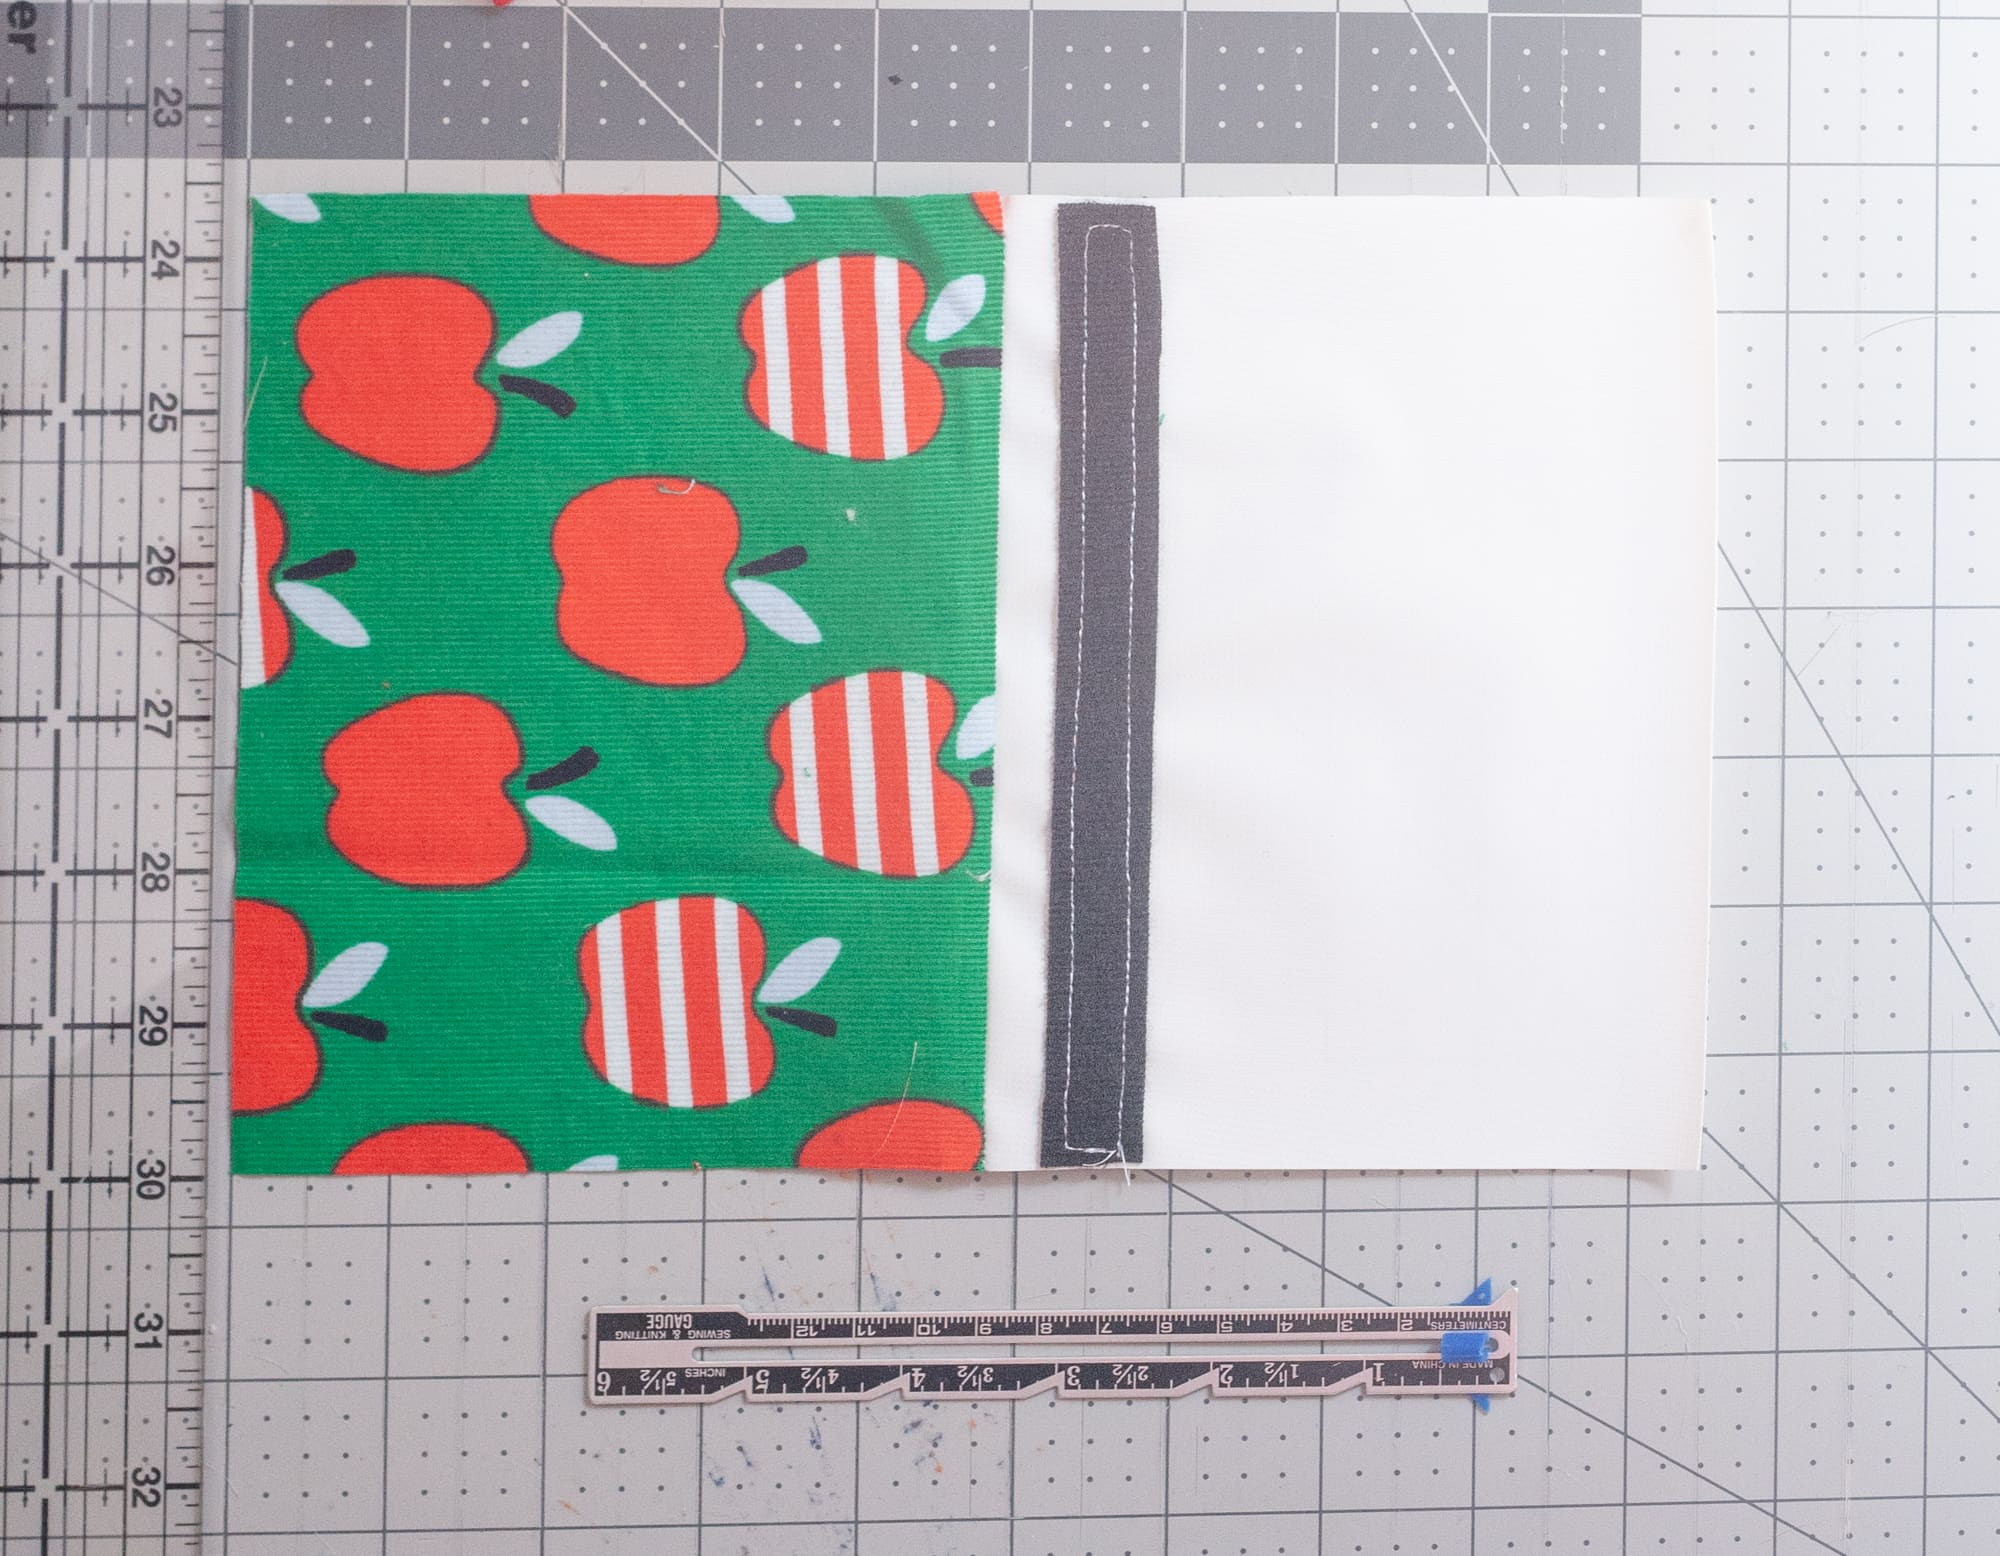 White fabric with a strip of Velcro sewn on to it, attached to a piece of apple-printed fabric